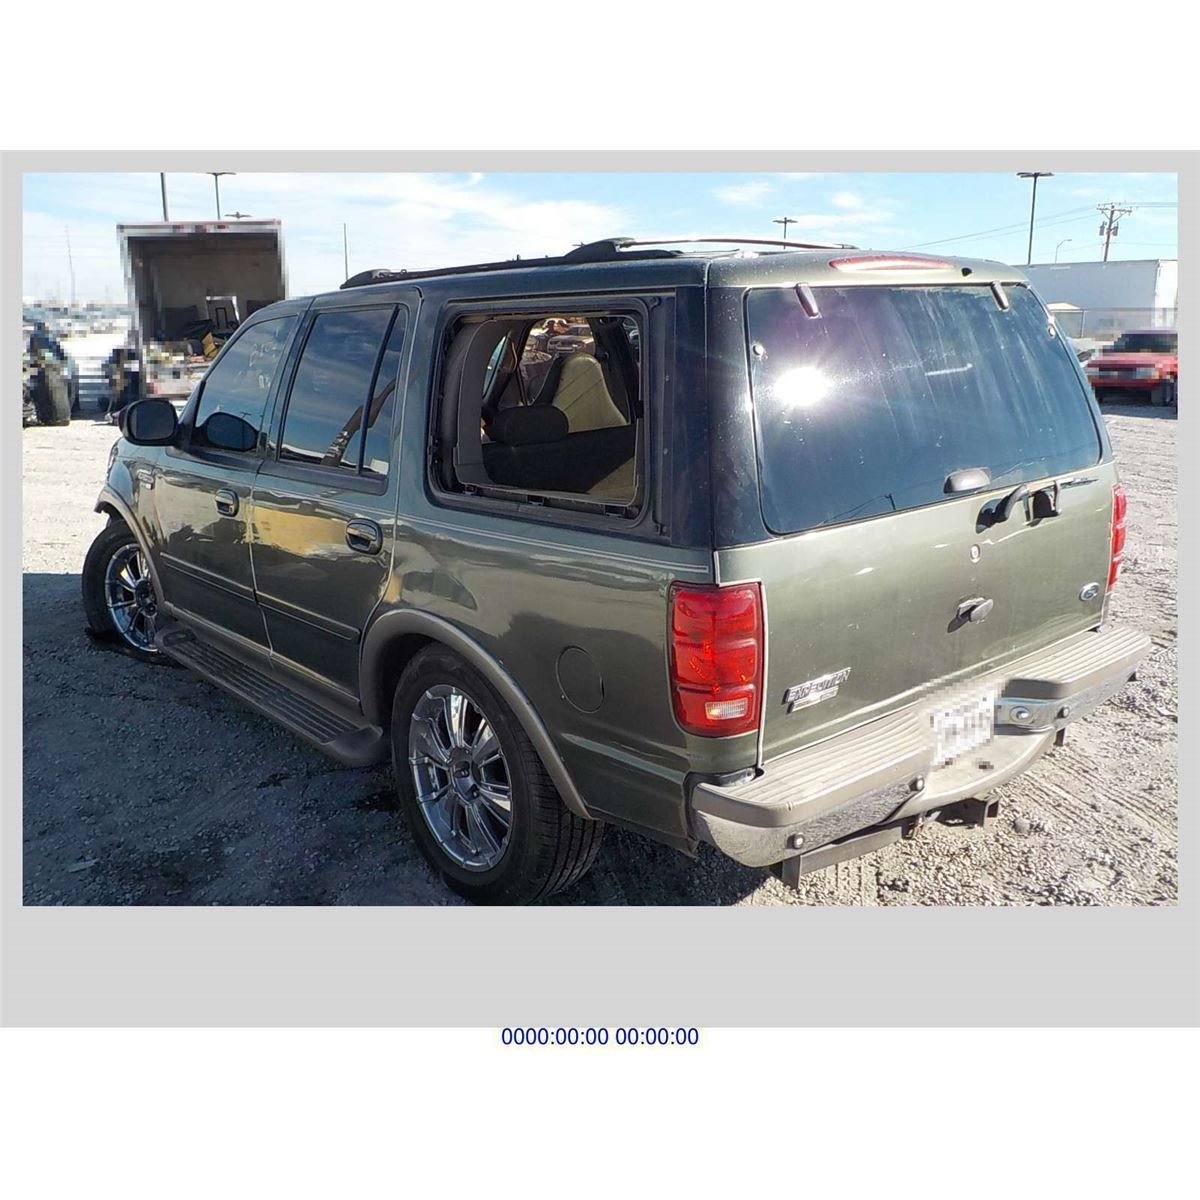 1997 Ford Expedition For Sale: FORD EXPEDITION // REBUILT SALVAGE